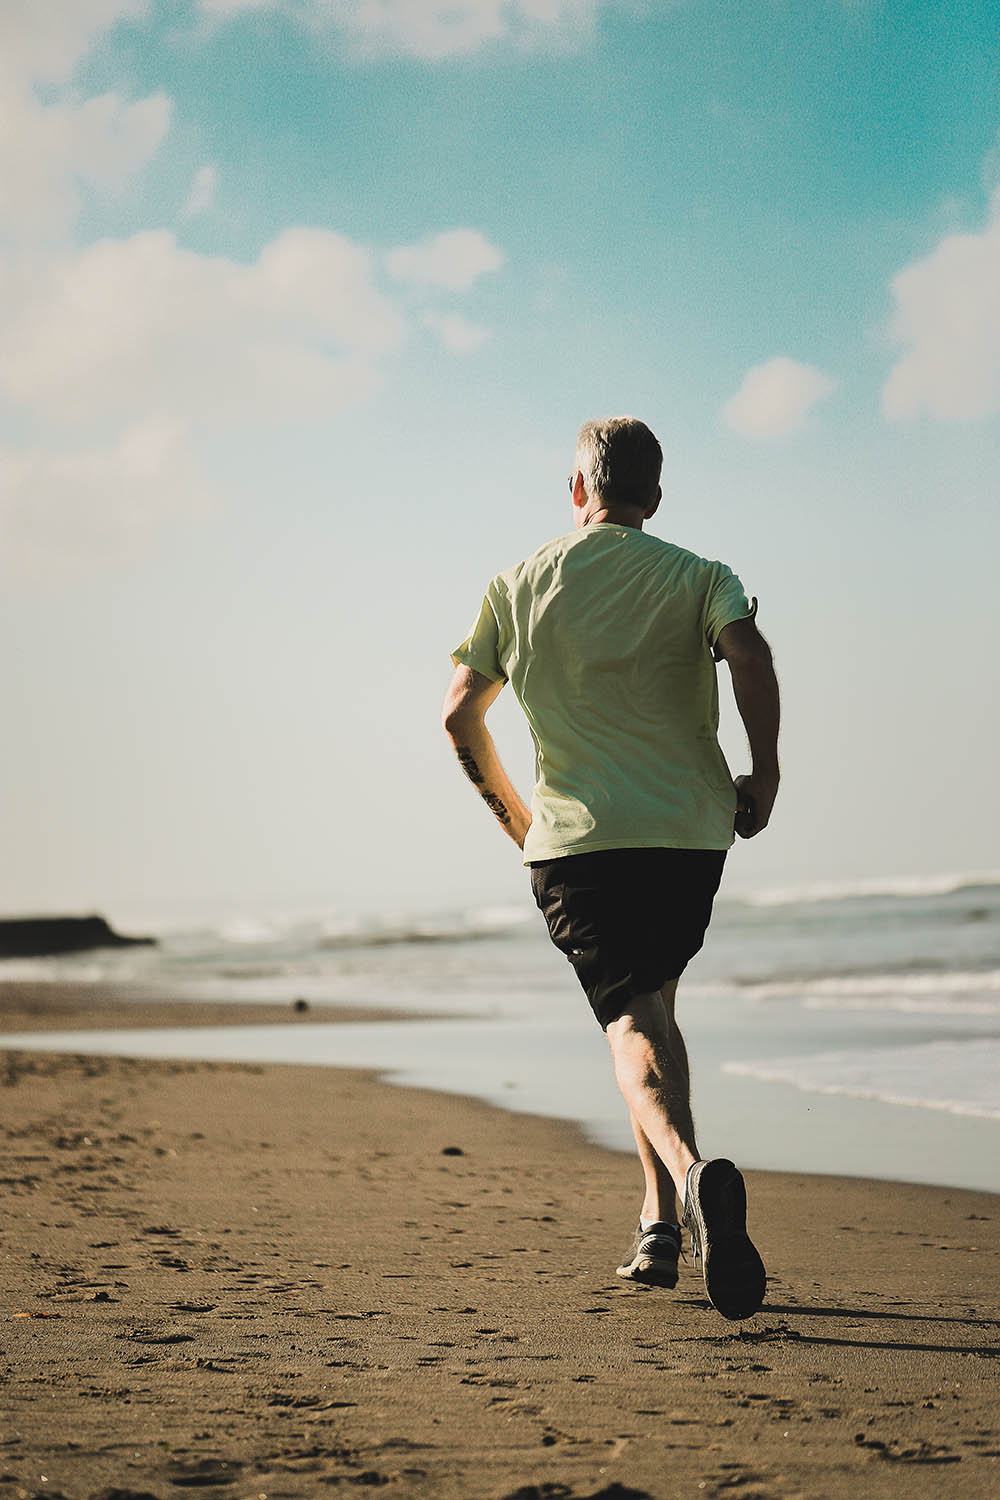 It is recommended to exercise for at least 30 minutes a day